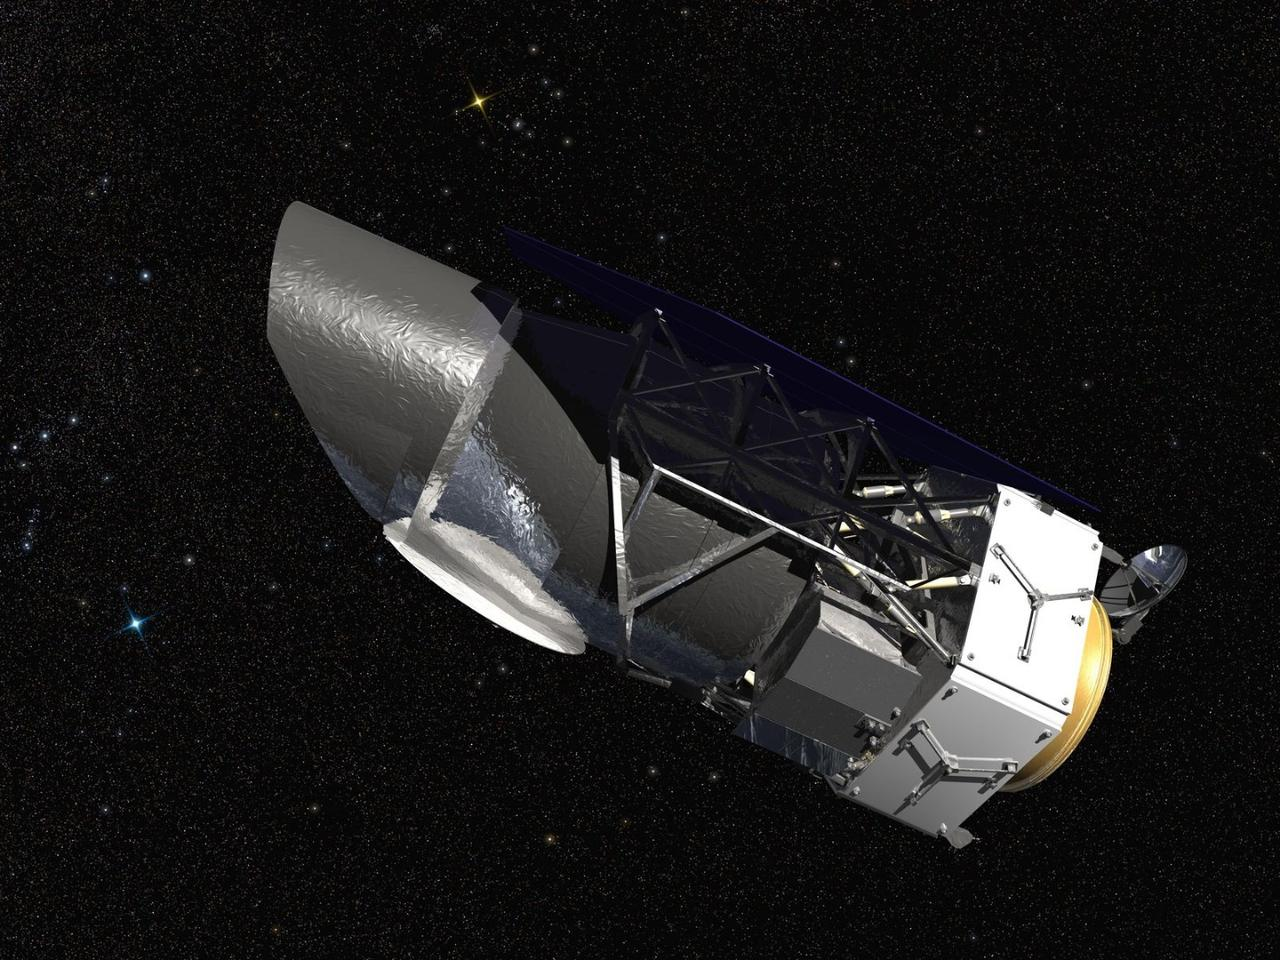 Artist's impression of the WFIRST orbital telescope